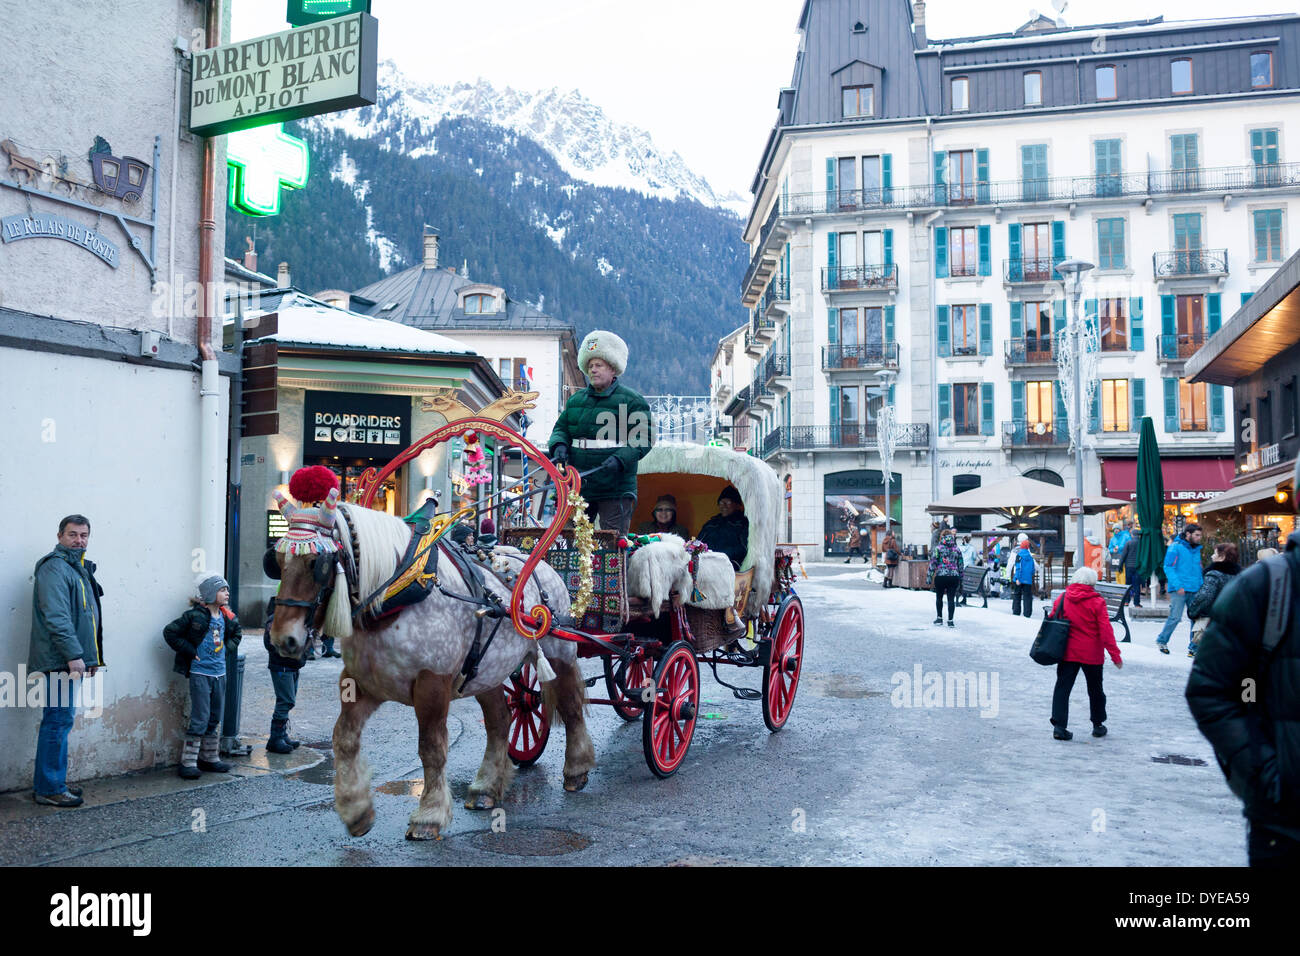 Pedestrians walk past a horse drawn buggy covered in fur on the Rue du Docteur Paccard in the village of Chamonix Mont-Blanc. - Stock Image